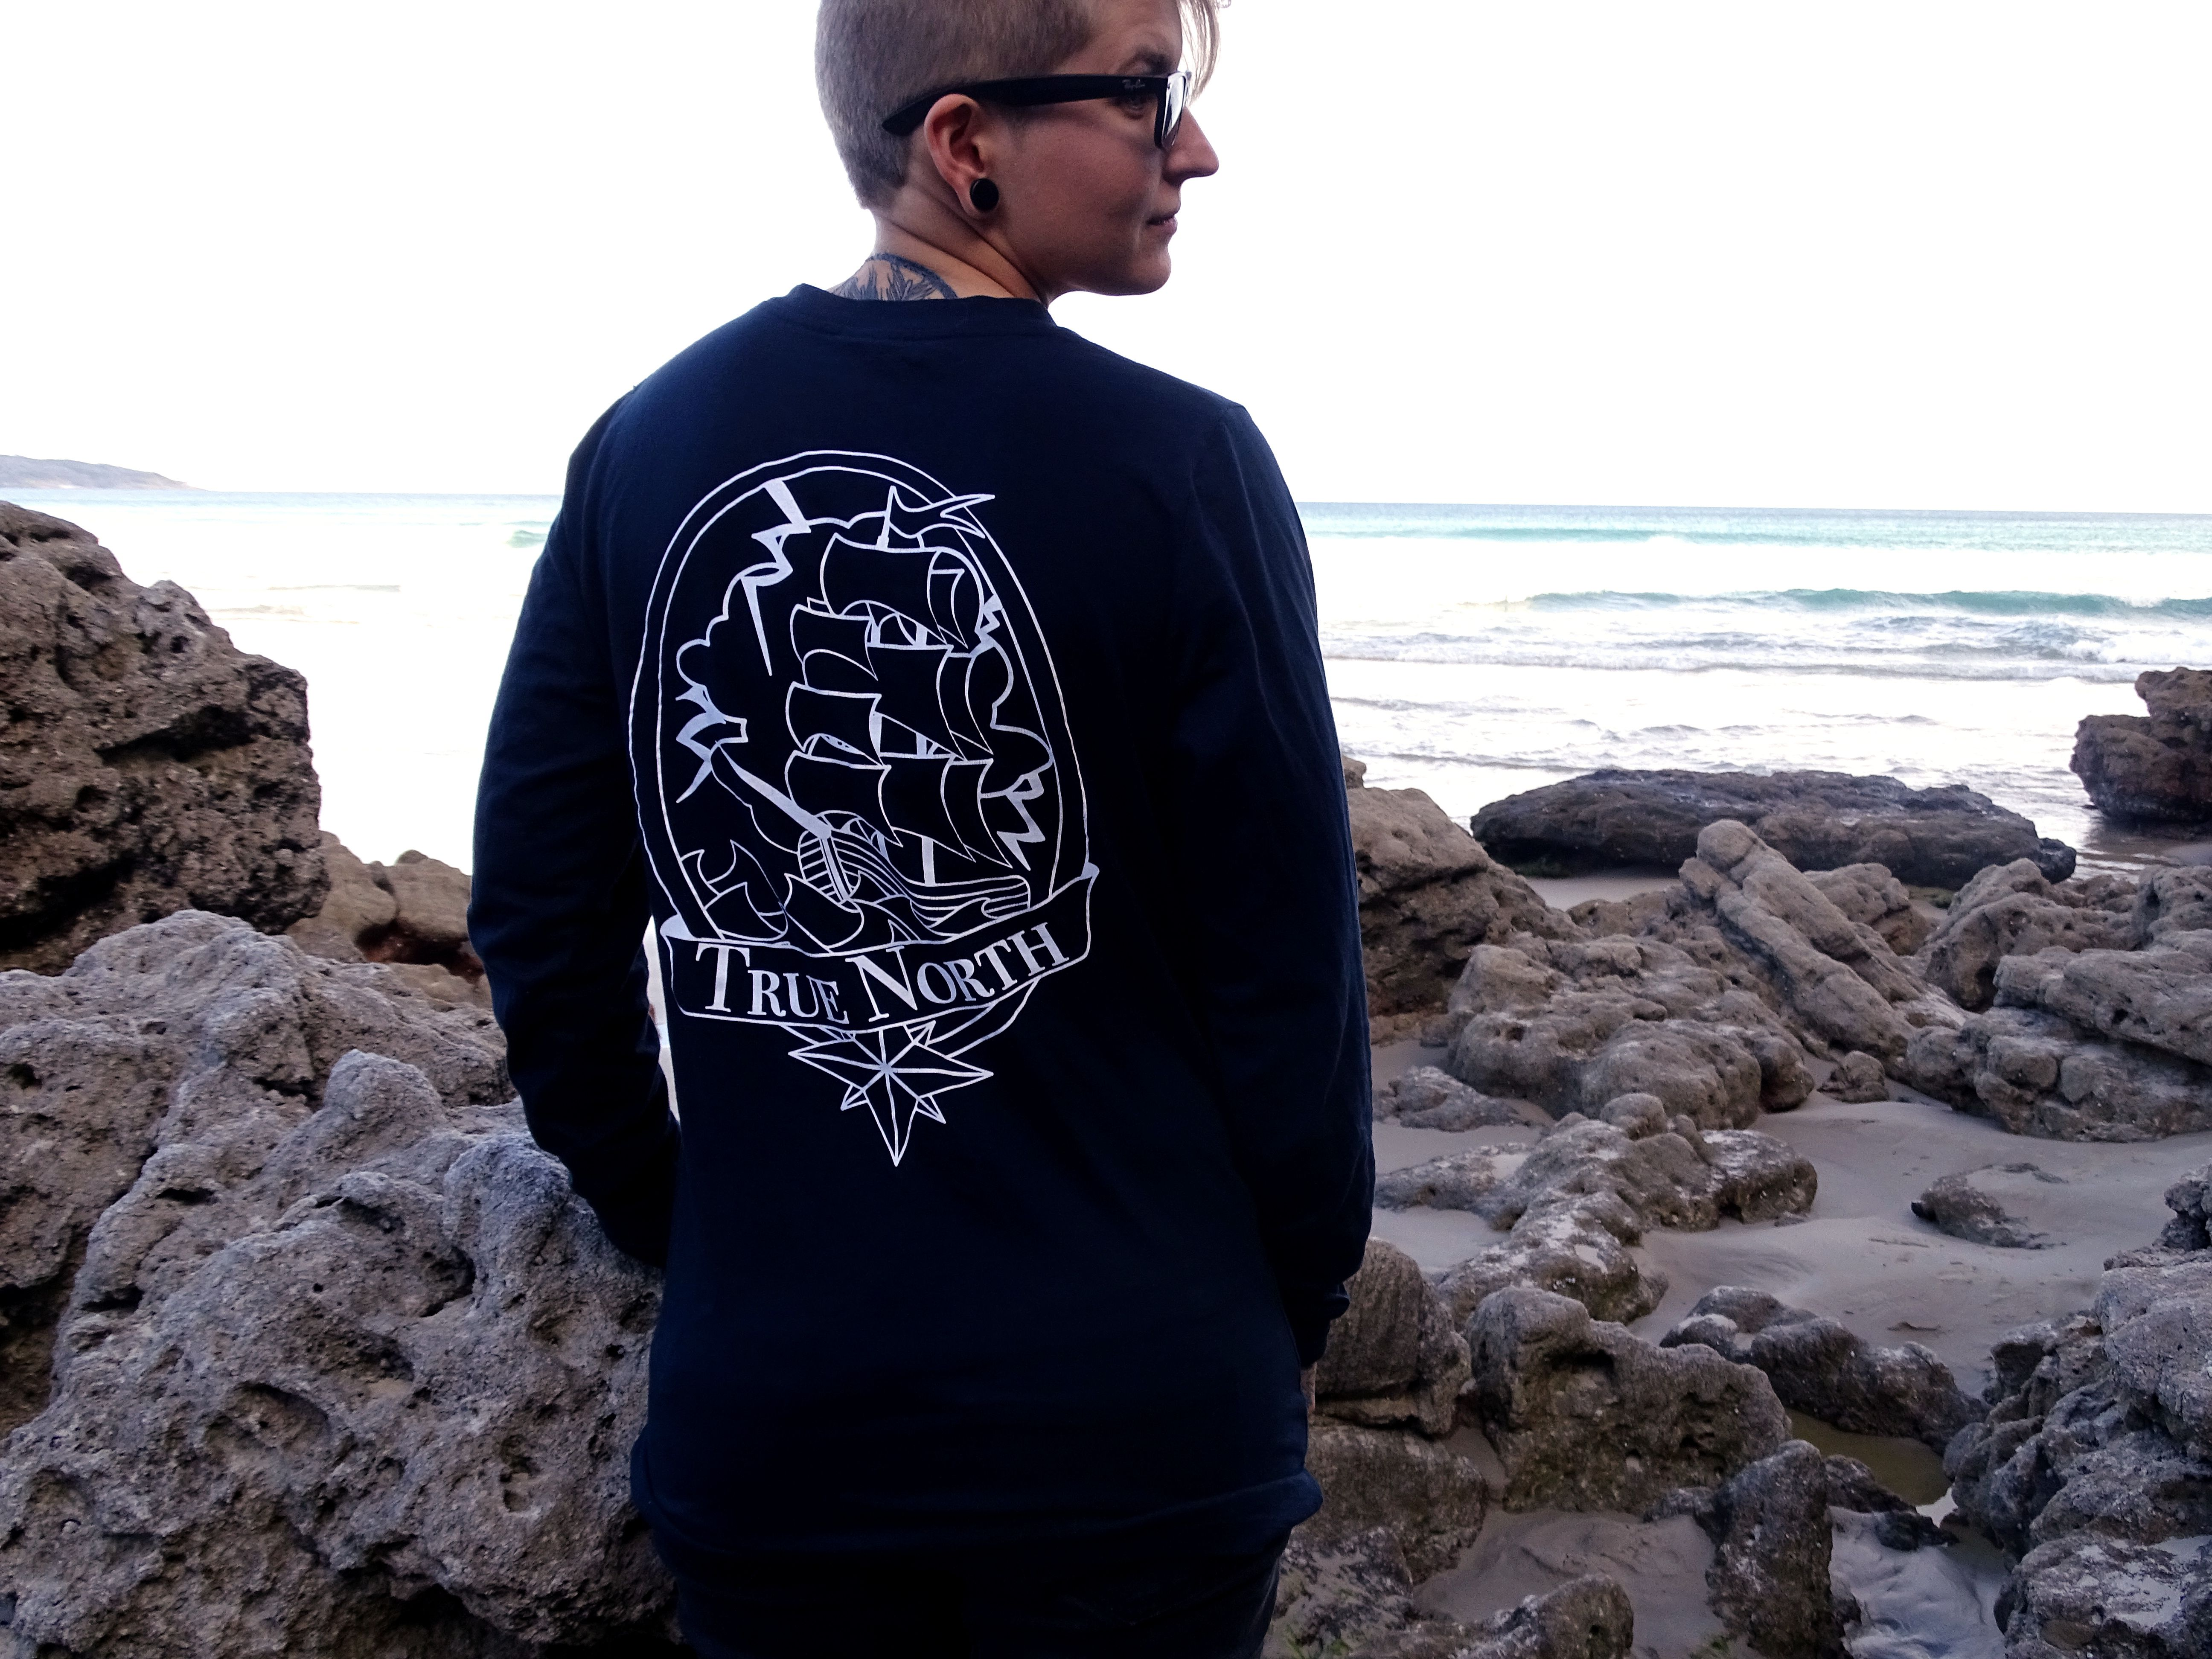 Our Nordic Long Sleeve. truenorthcollective.bigcartel.com #streetwear #tattoos #inkedgirls #girlswithink #tattooapparel